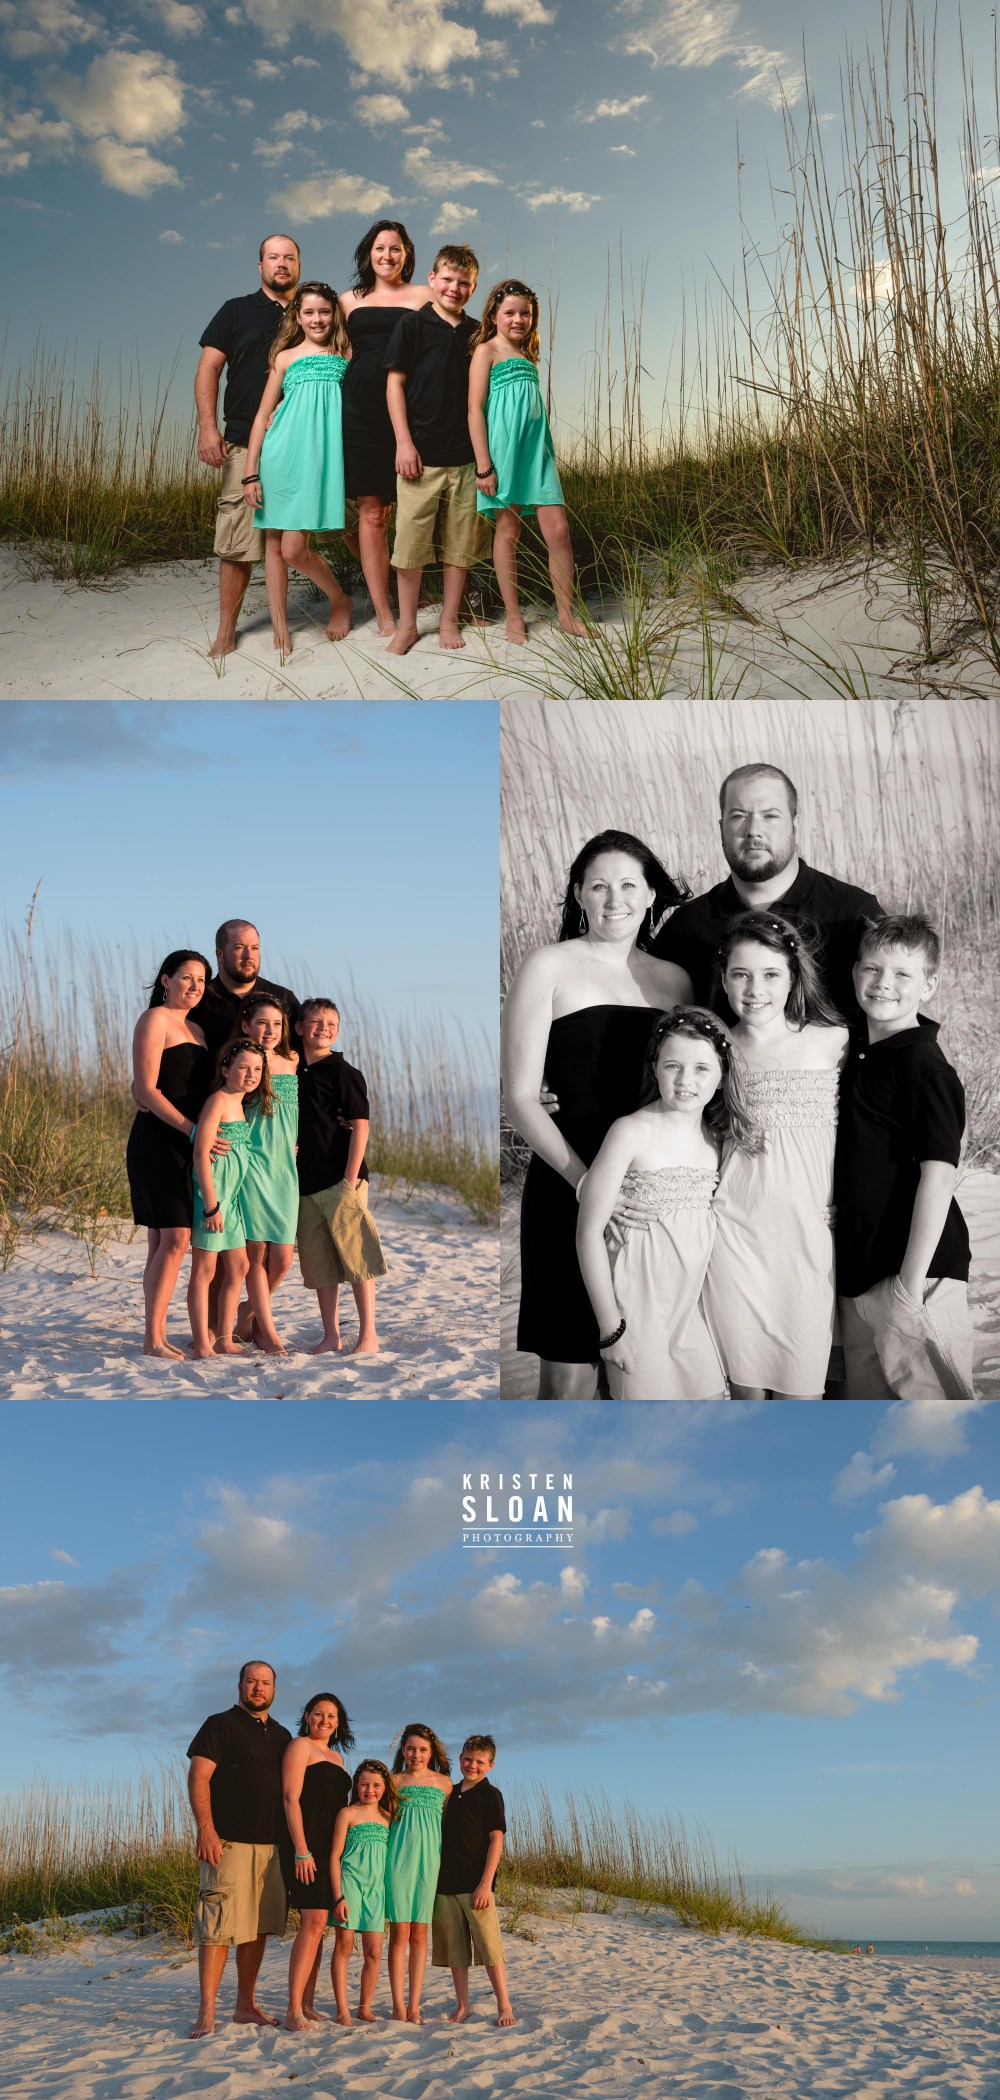 St Pete Beach Sunset Beach FL Treasure Island Family Photographer Kristen Sloan